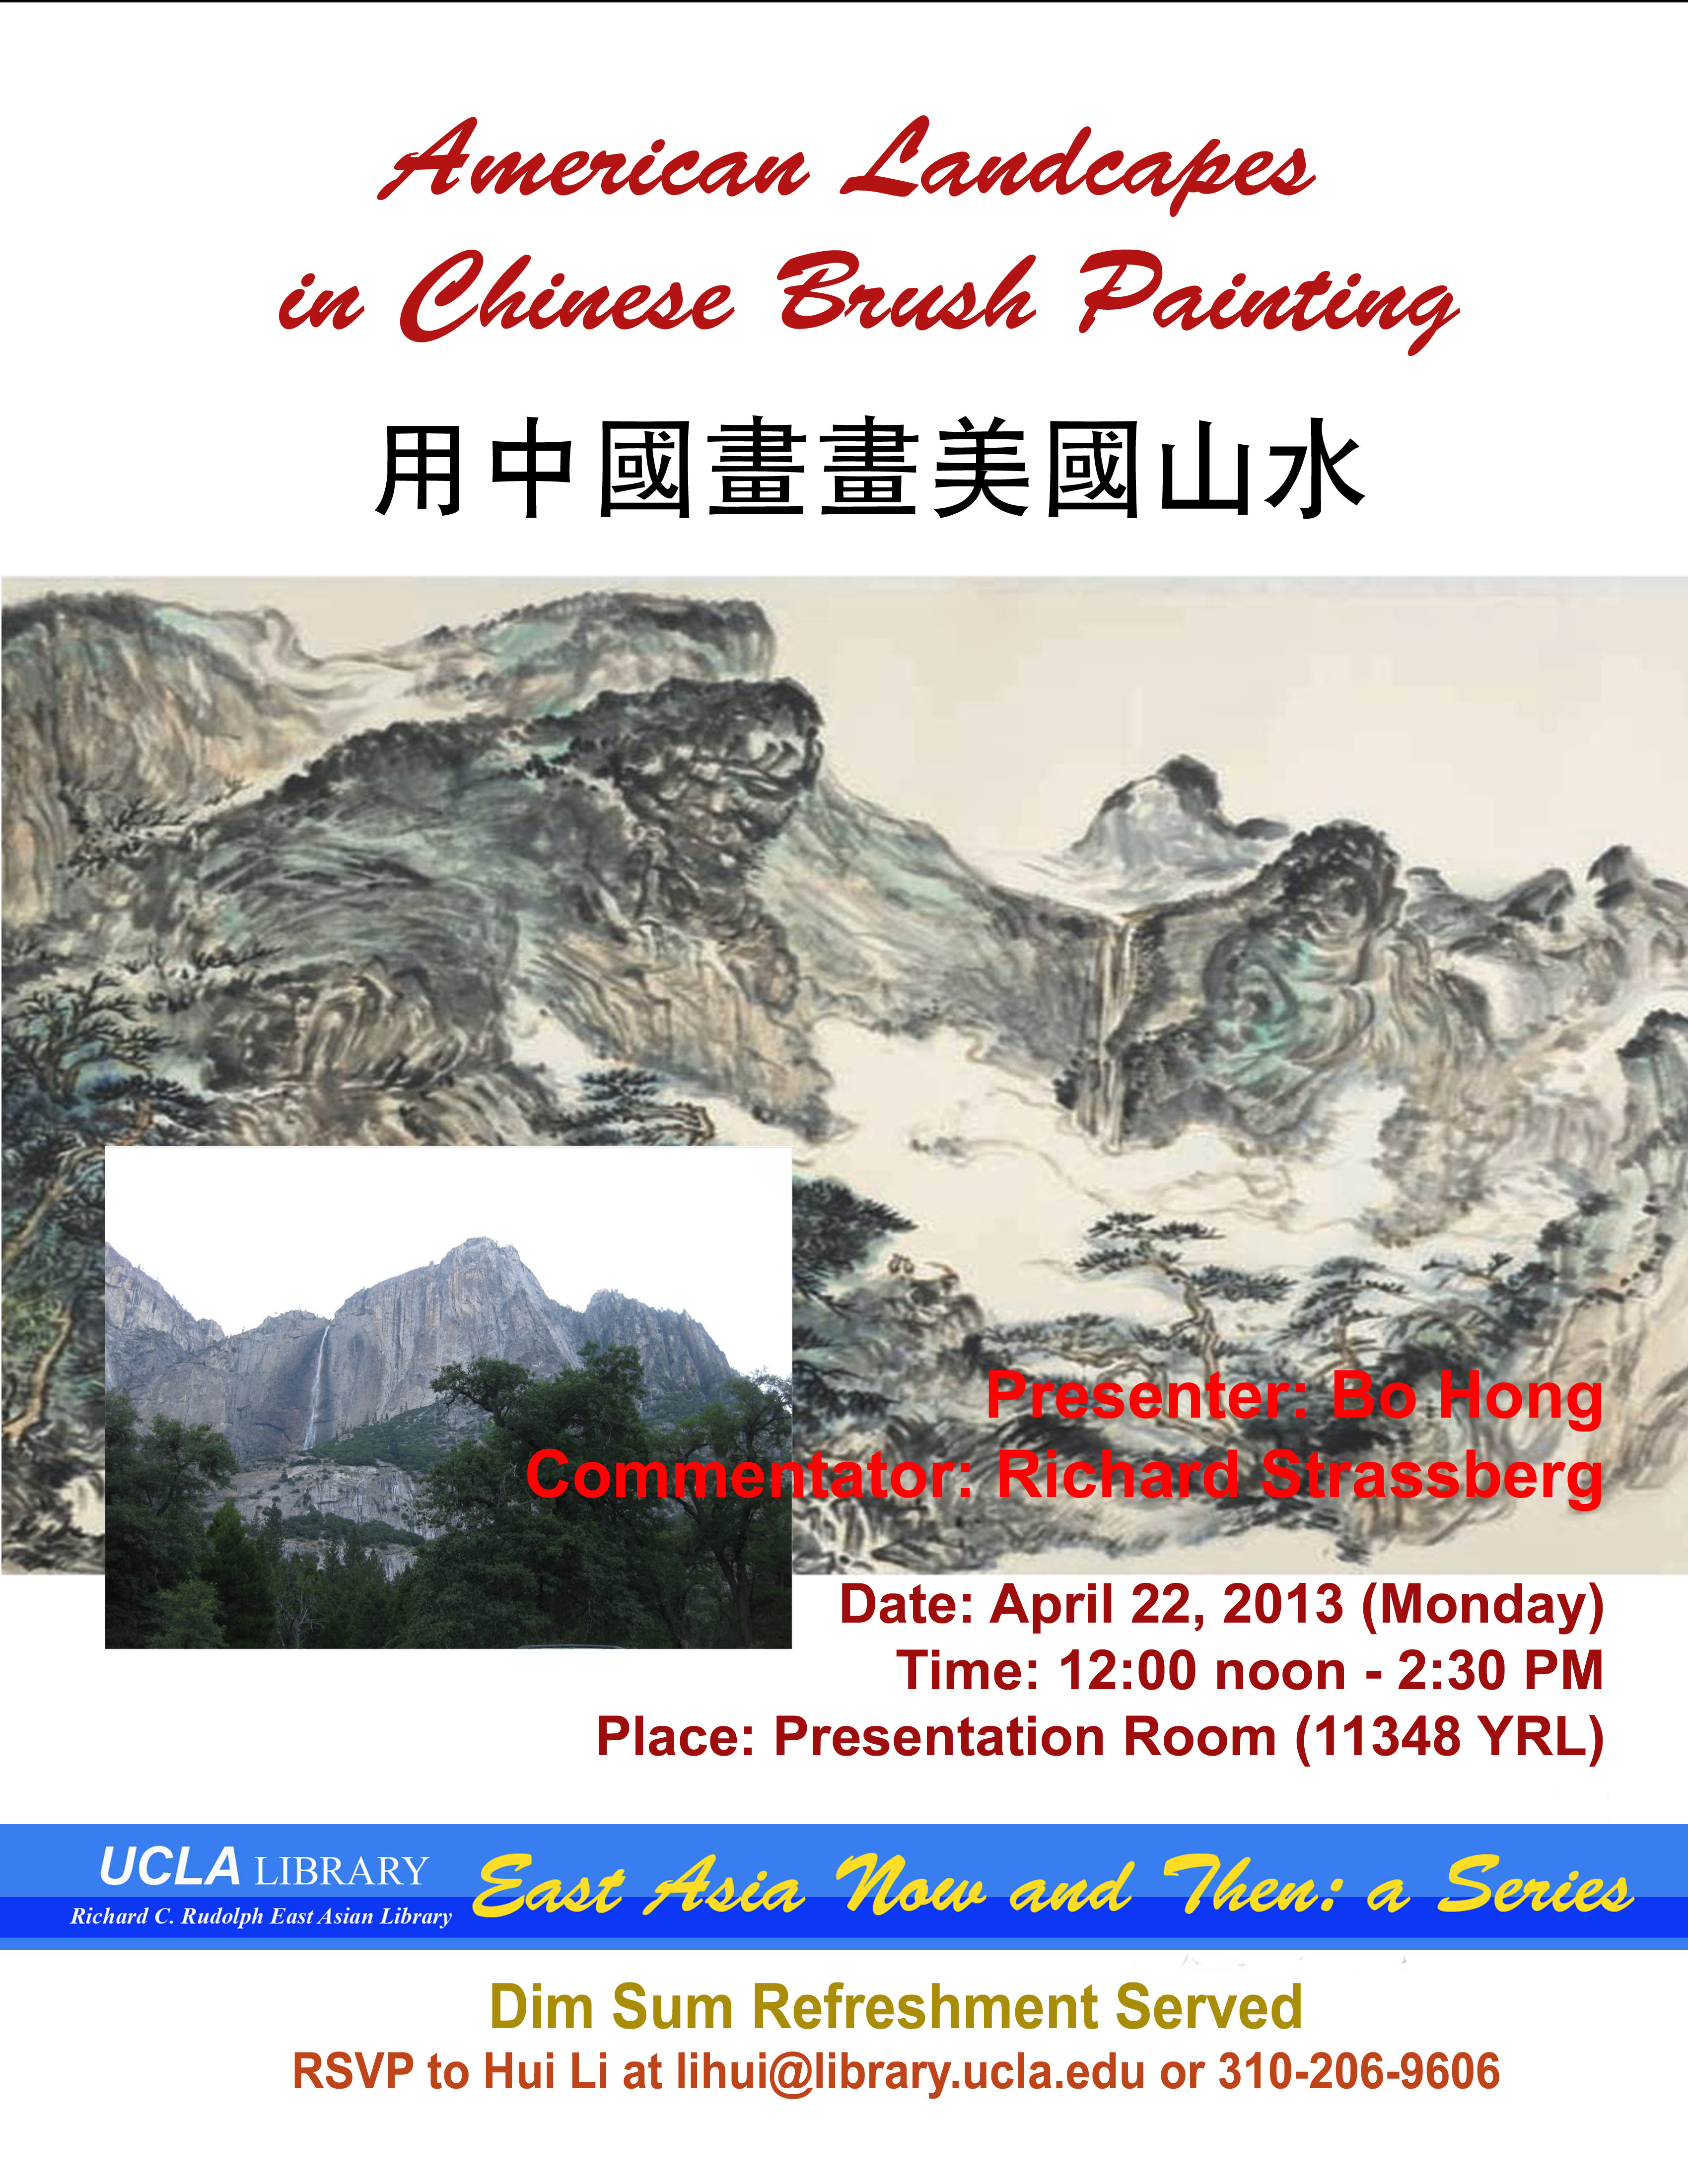 American Landscapes in Chinese Brush Painting